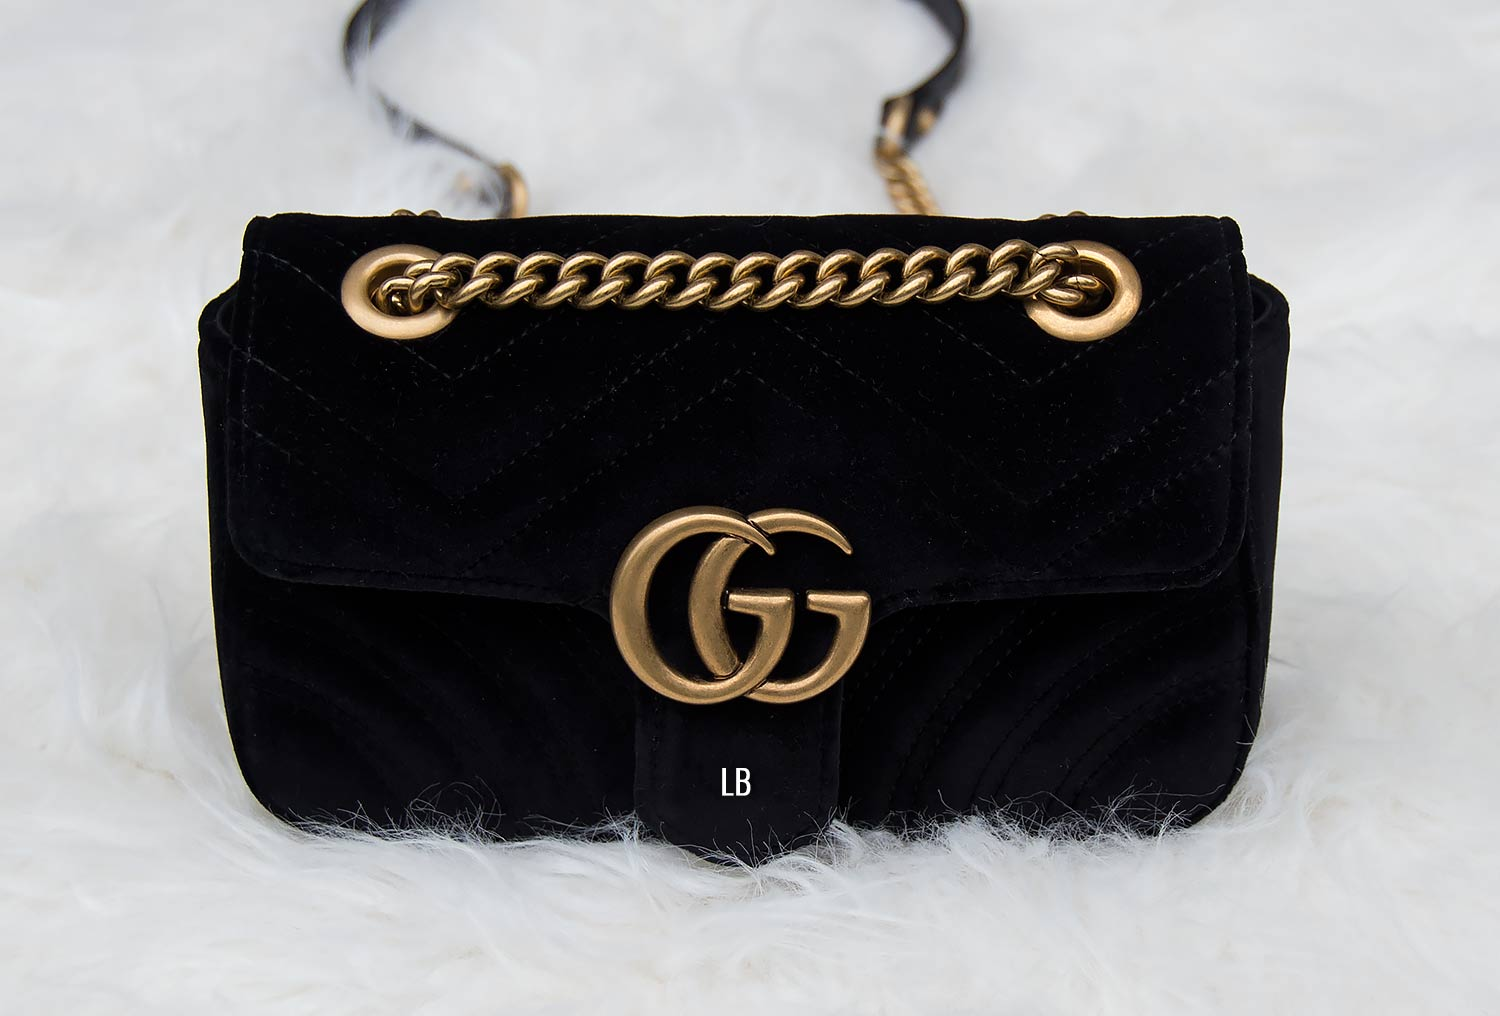 b5ca7fe7f09 Gucci GG Marmont Velvet Mini Bag Review